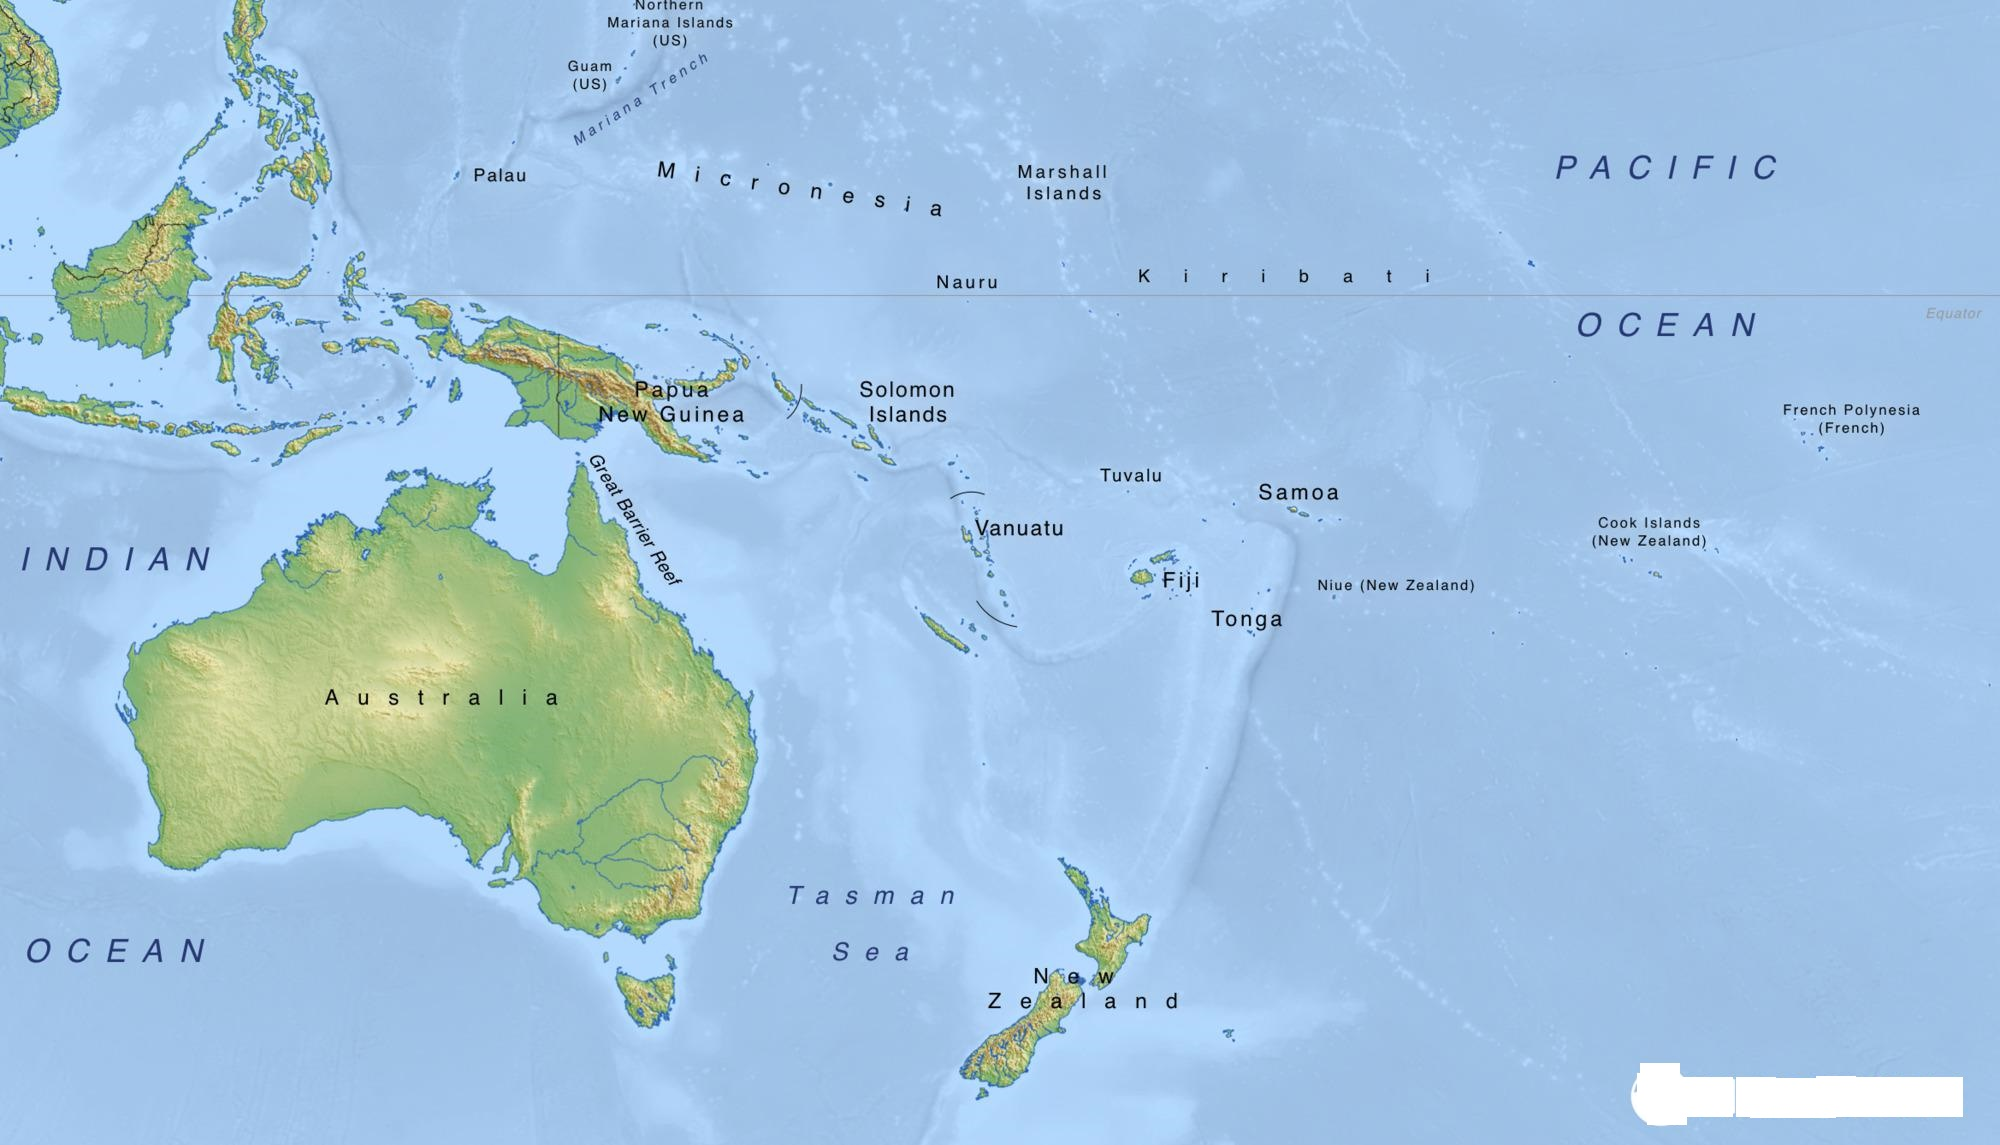 Geographically Oceania is divided into three Sub-Regions: Melanesia, Micronesia, and Polynesia.